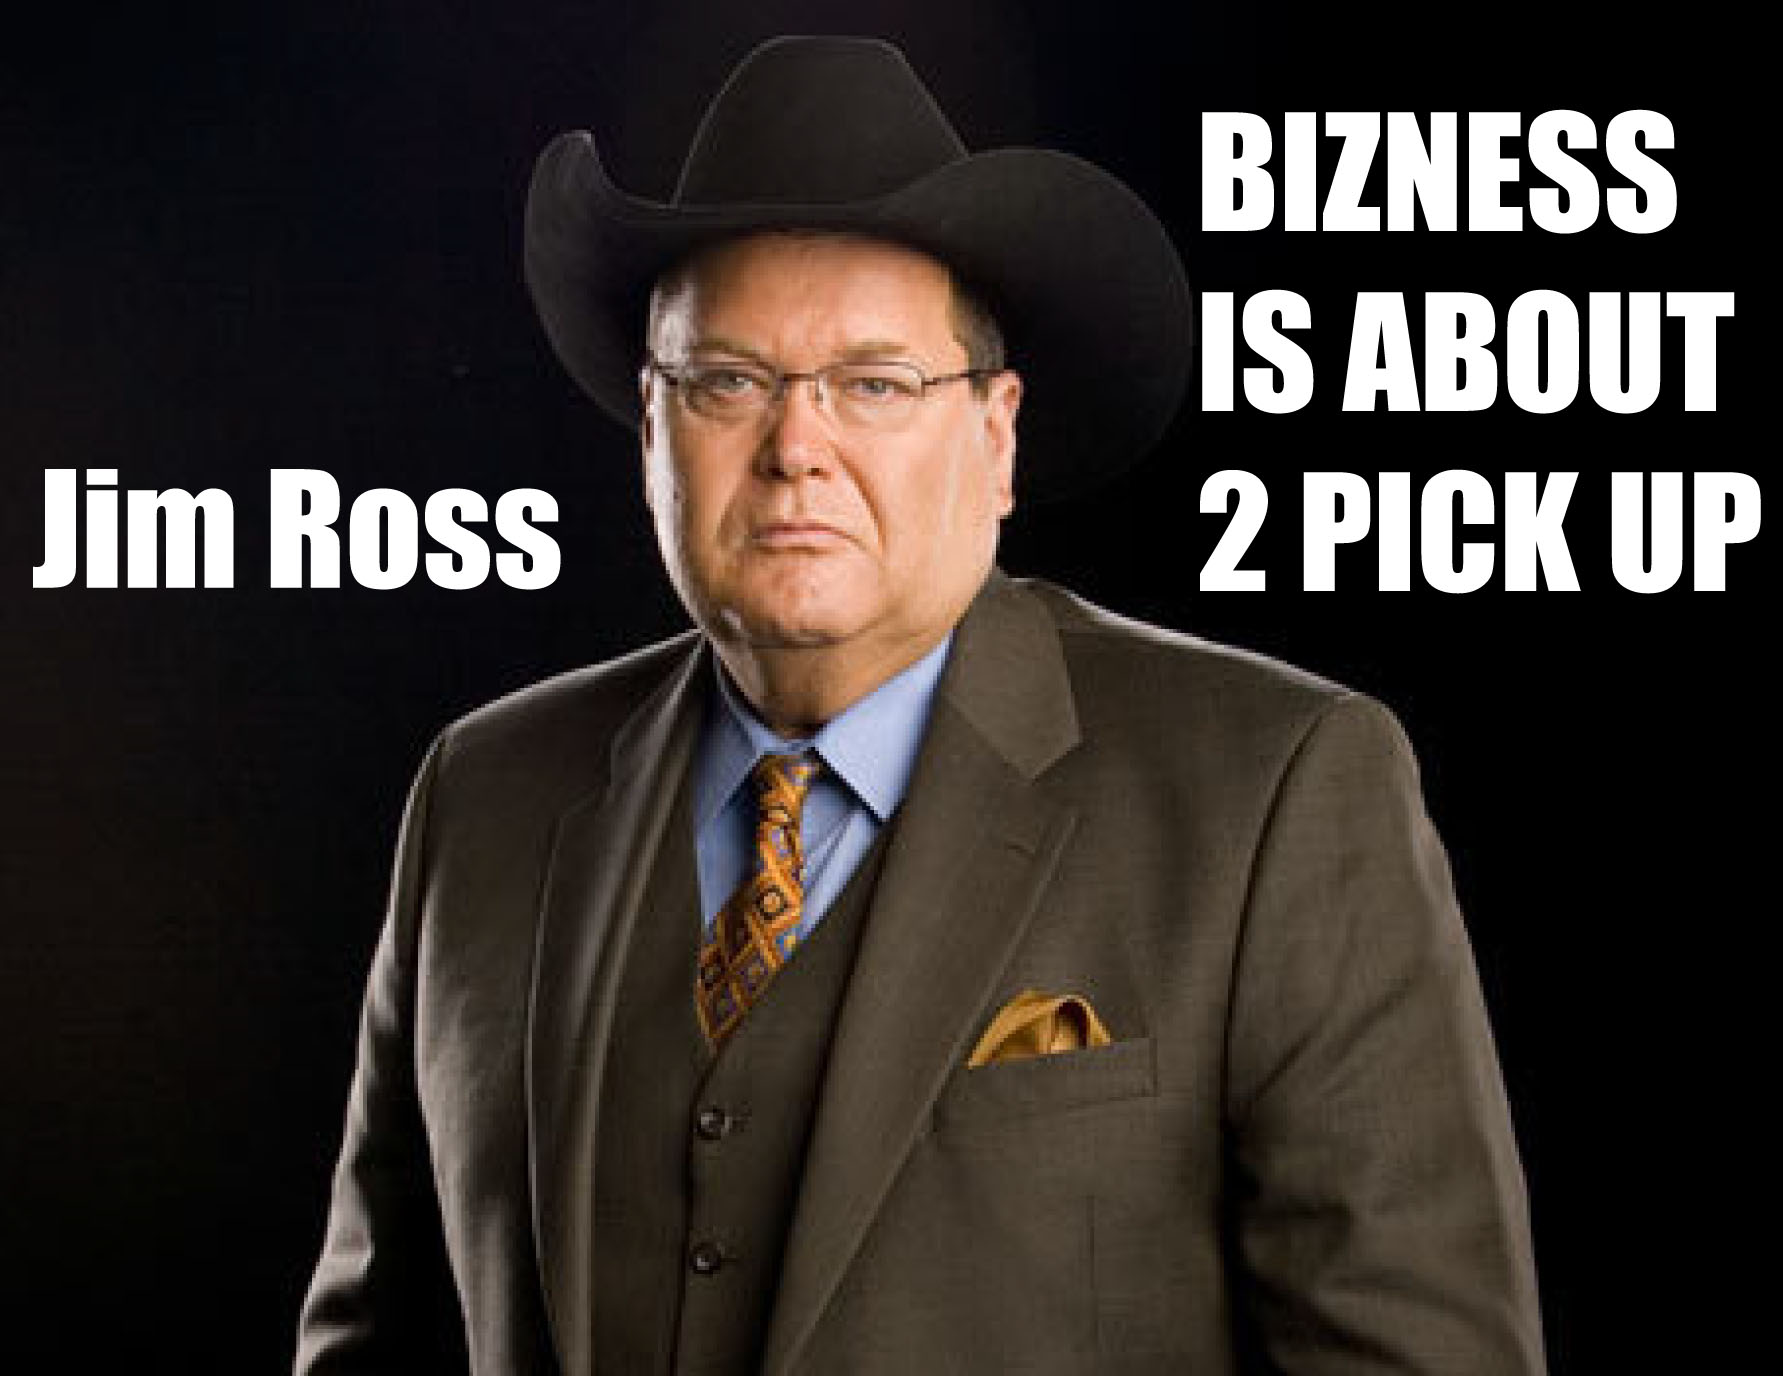 Jim Ross to release hip hop album in late 2012